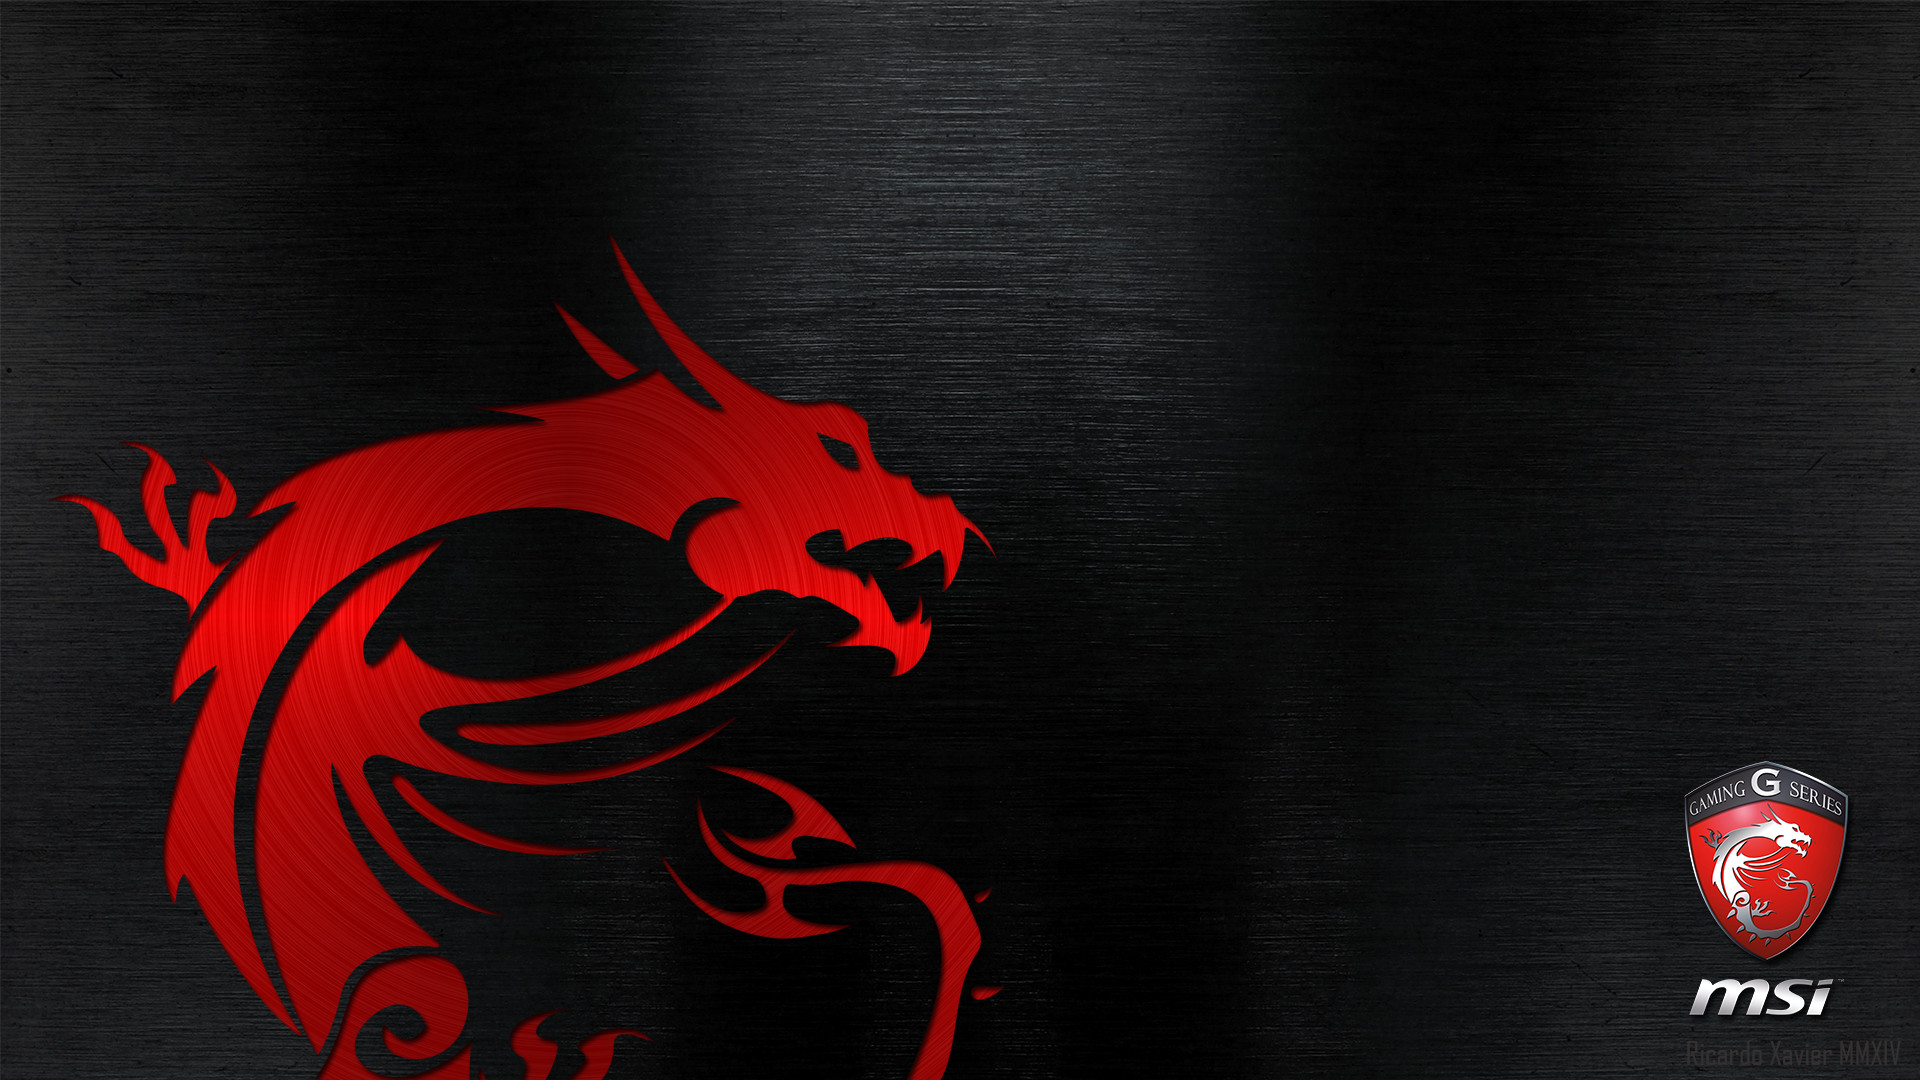 Msi Wallpaper Hd 1920x1080 88 Images